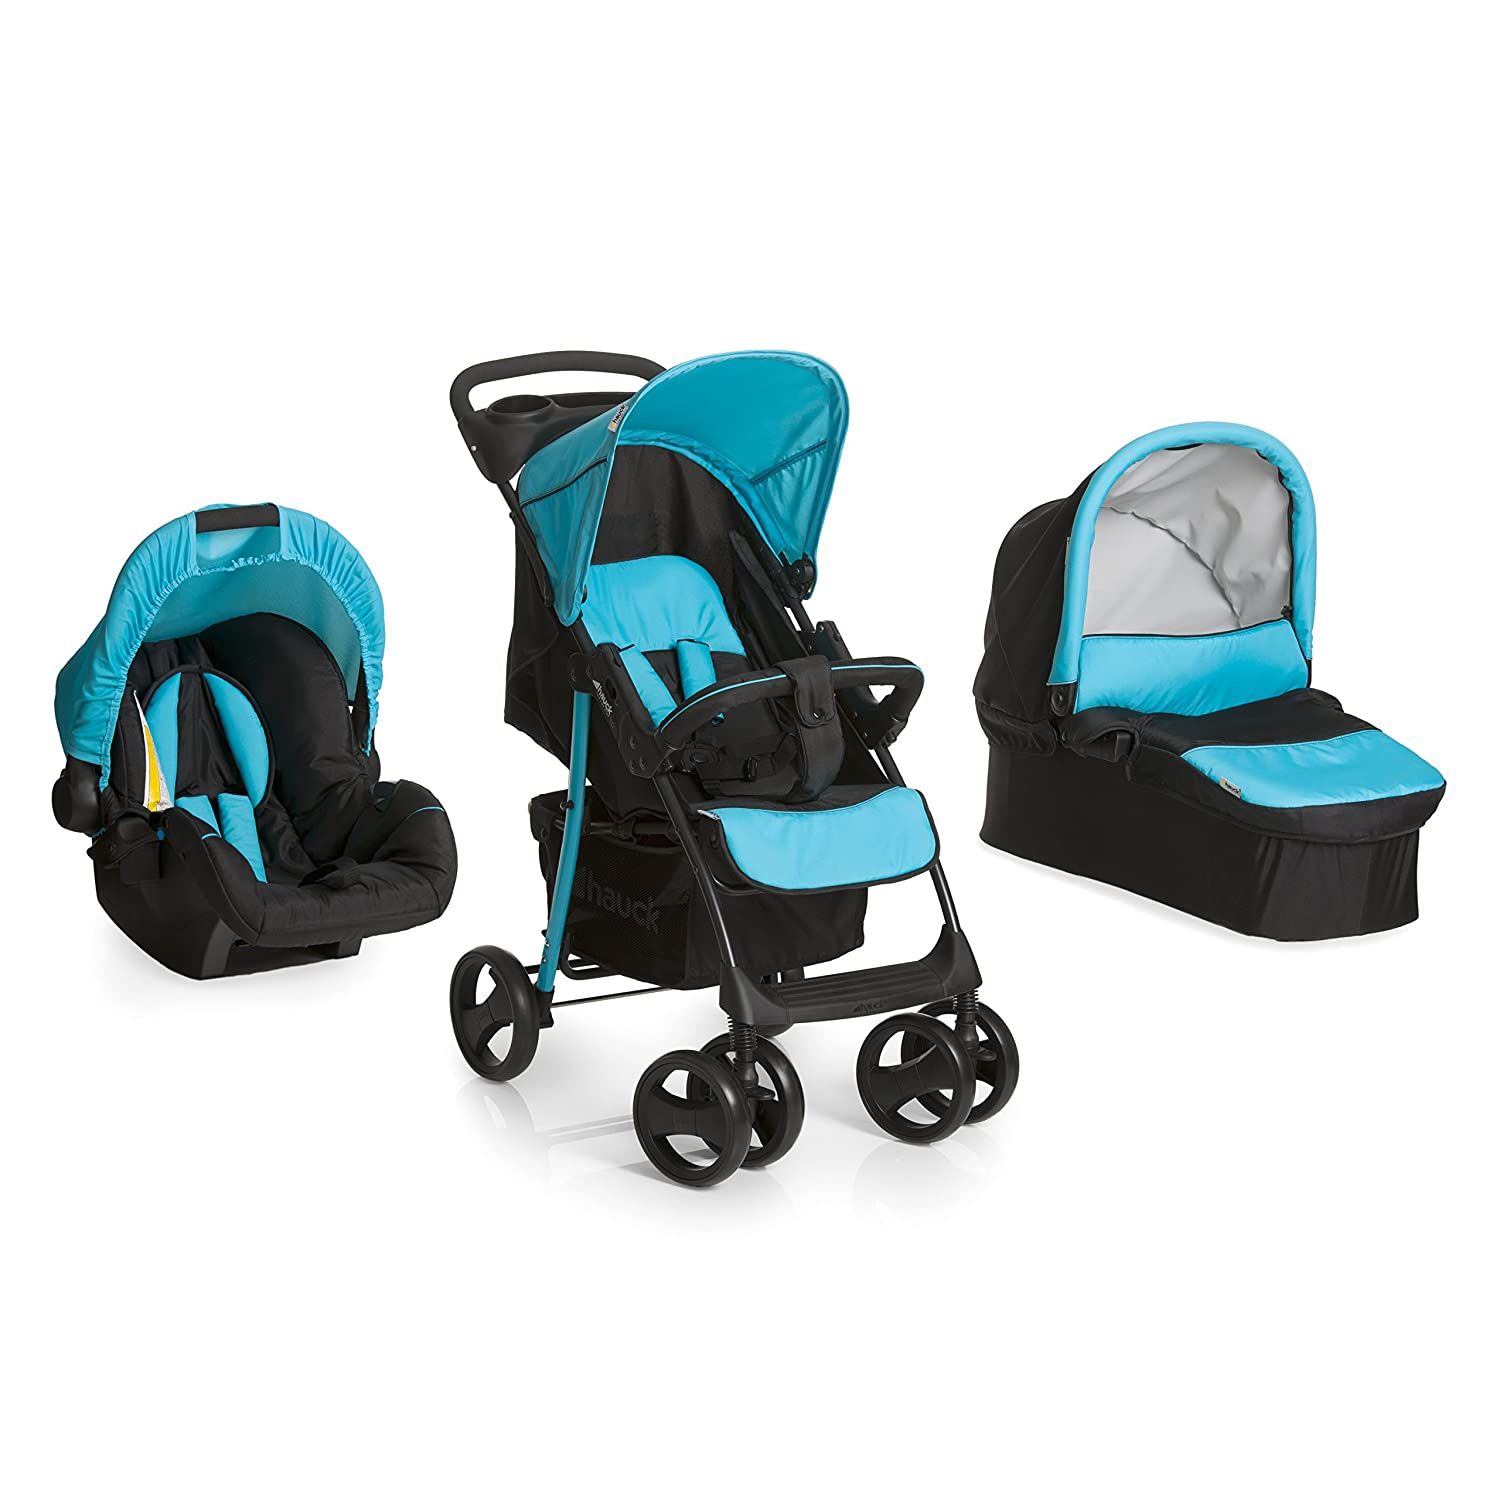 Hauck Shopper SLX Trio Set Lightweight Travel System, from Birth, Black/Blue (Car Seat, Carrycot and Raincover) H-15329